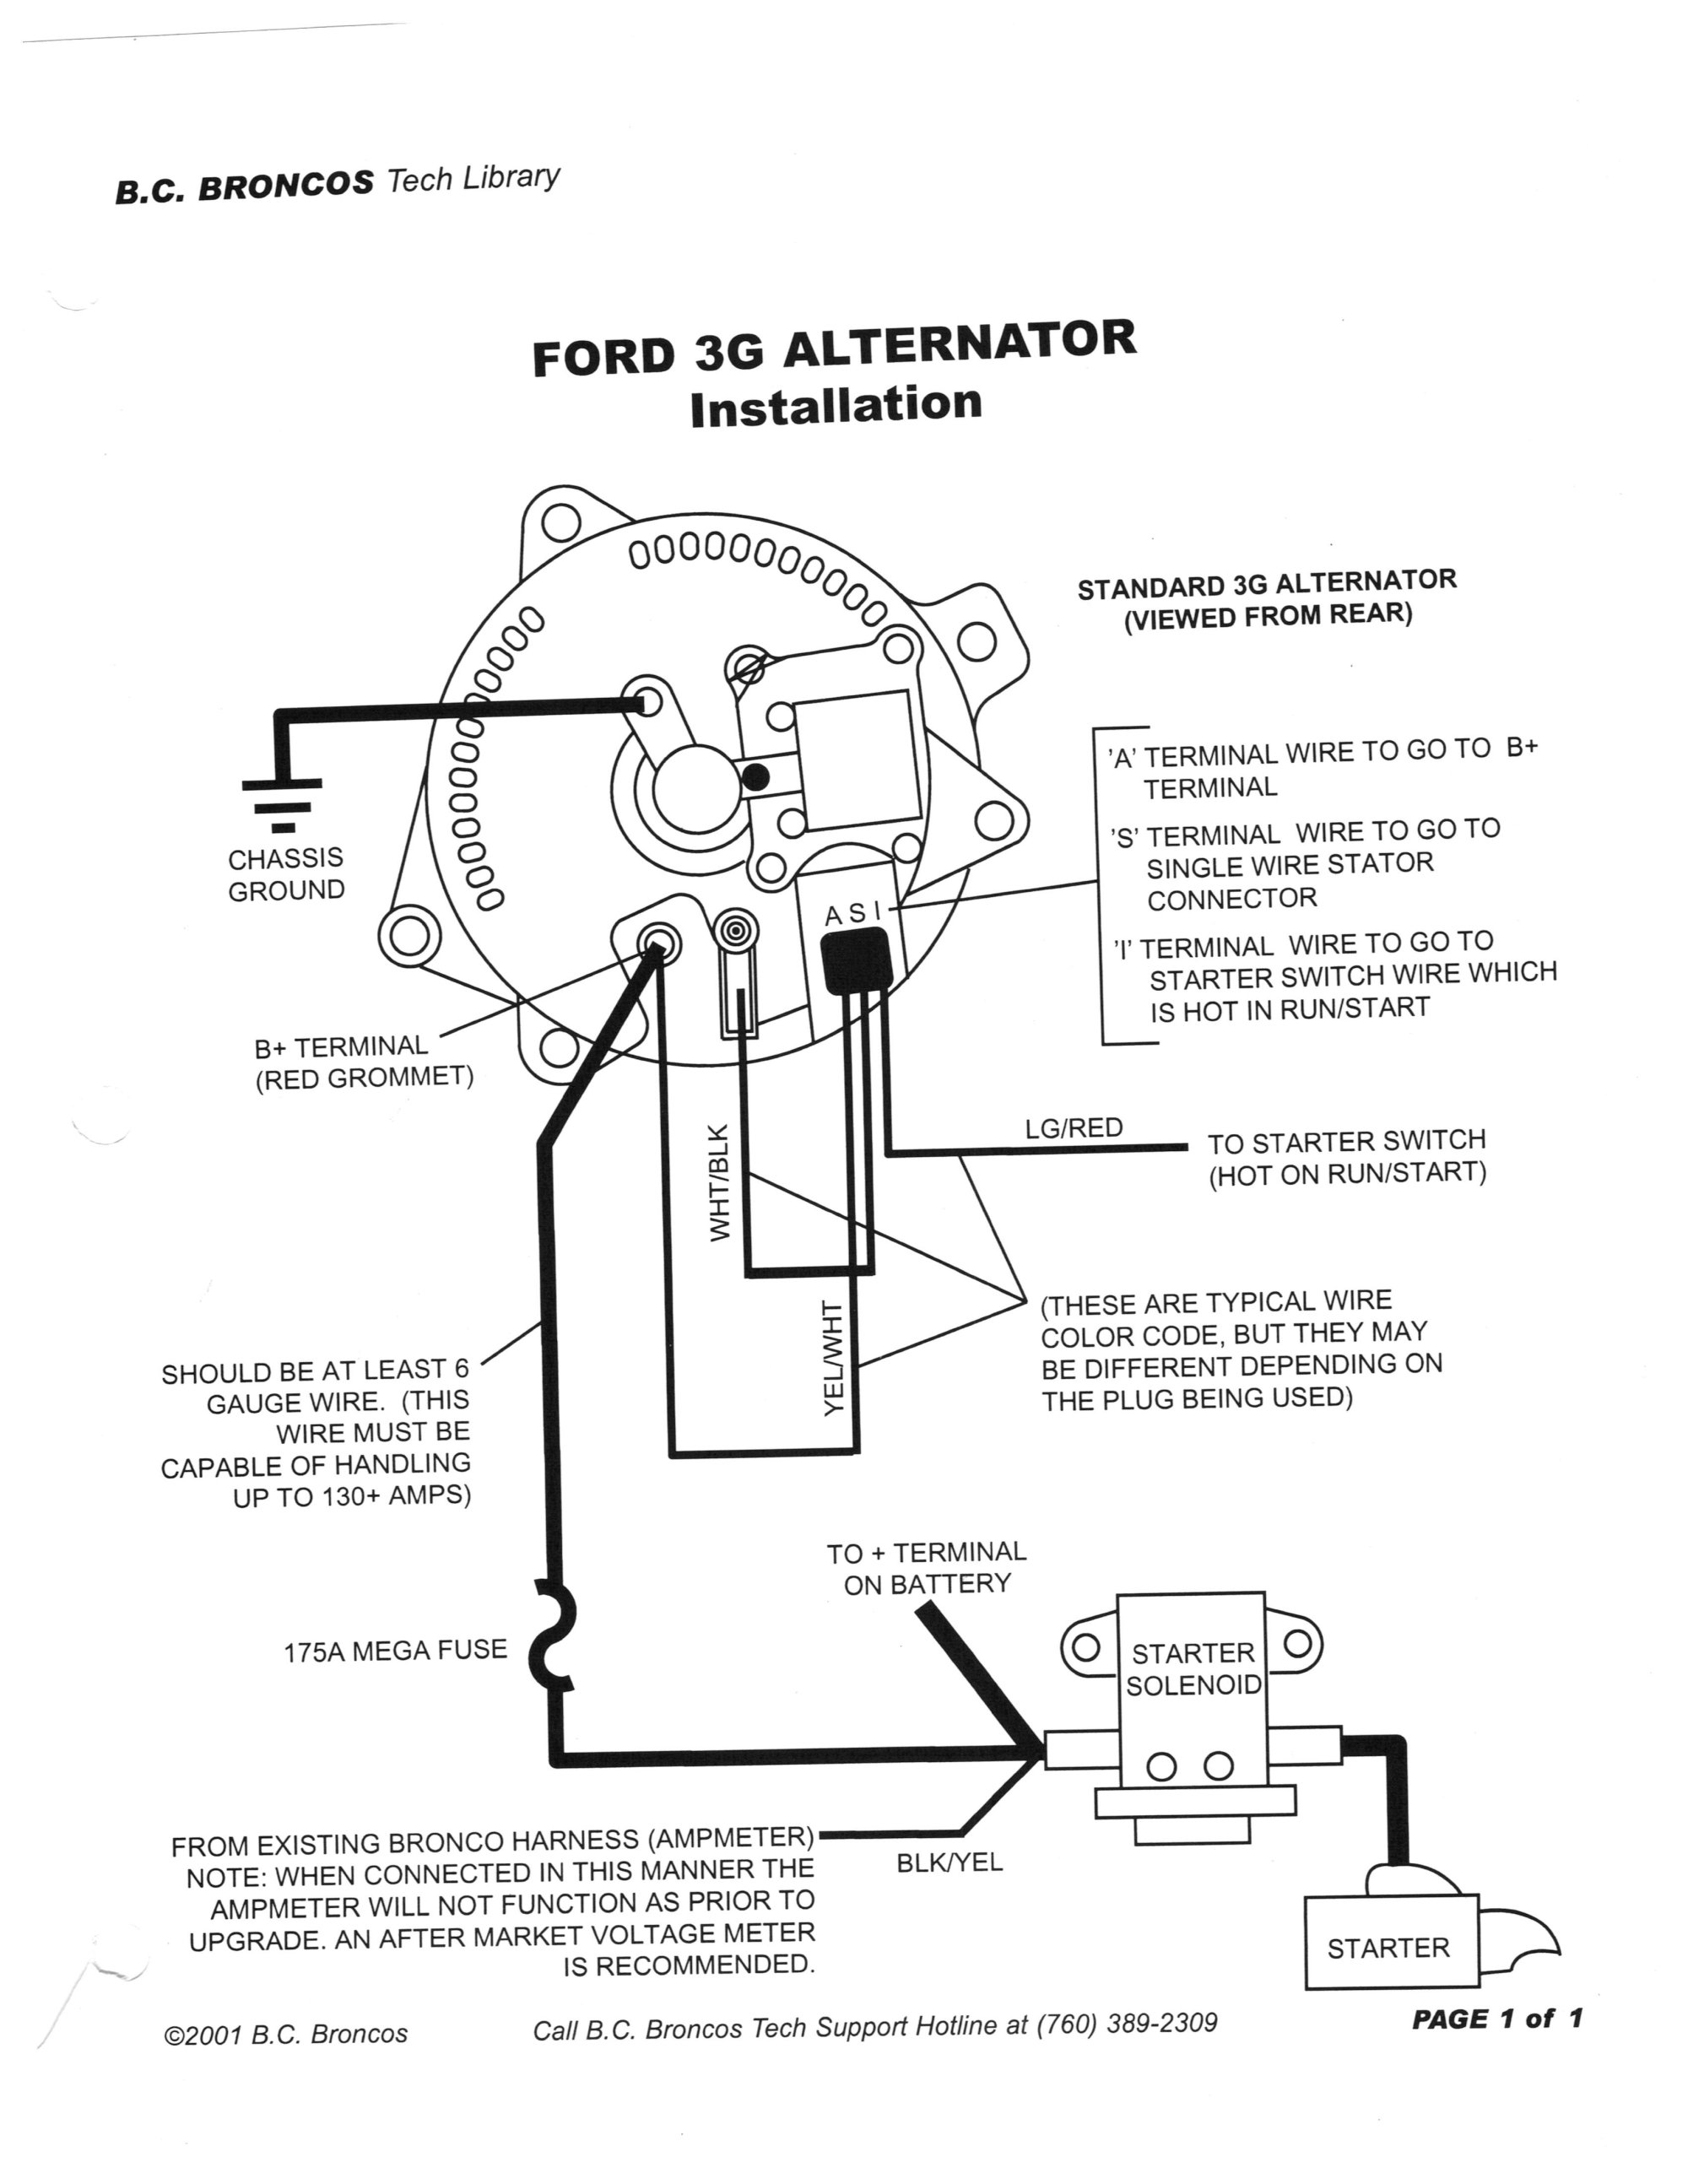 hight resolution of 1988 ford voltage regulator wiring wiring diagram 1988 ford voltage regulator wiring